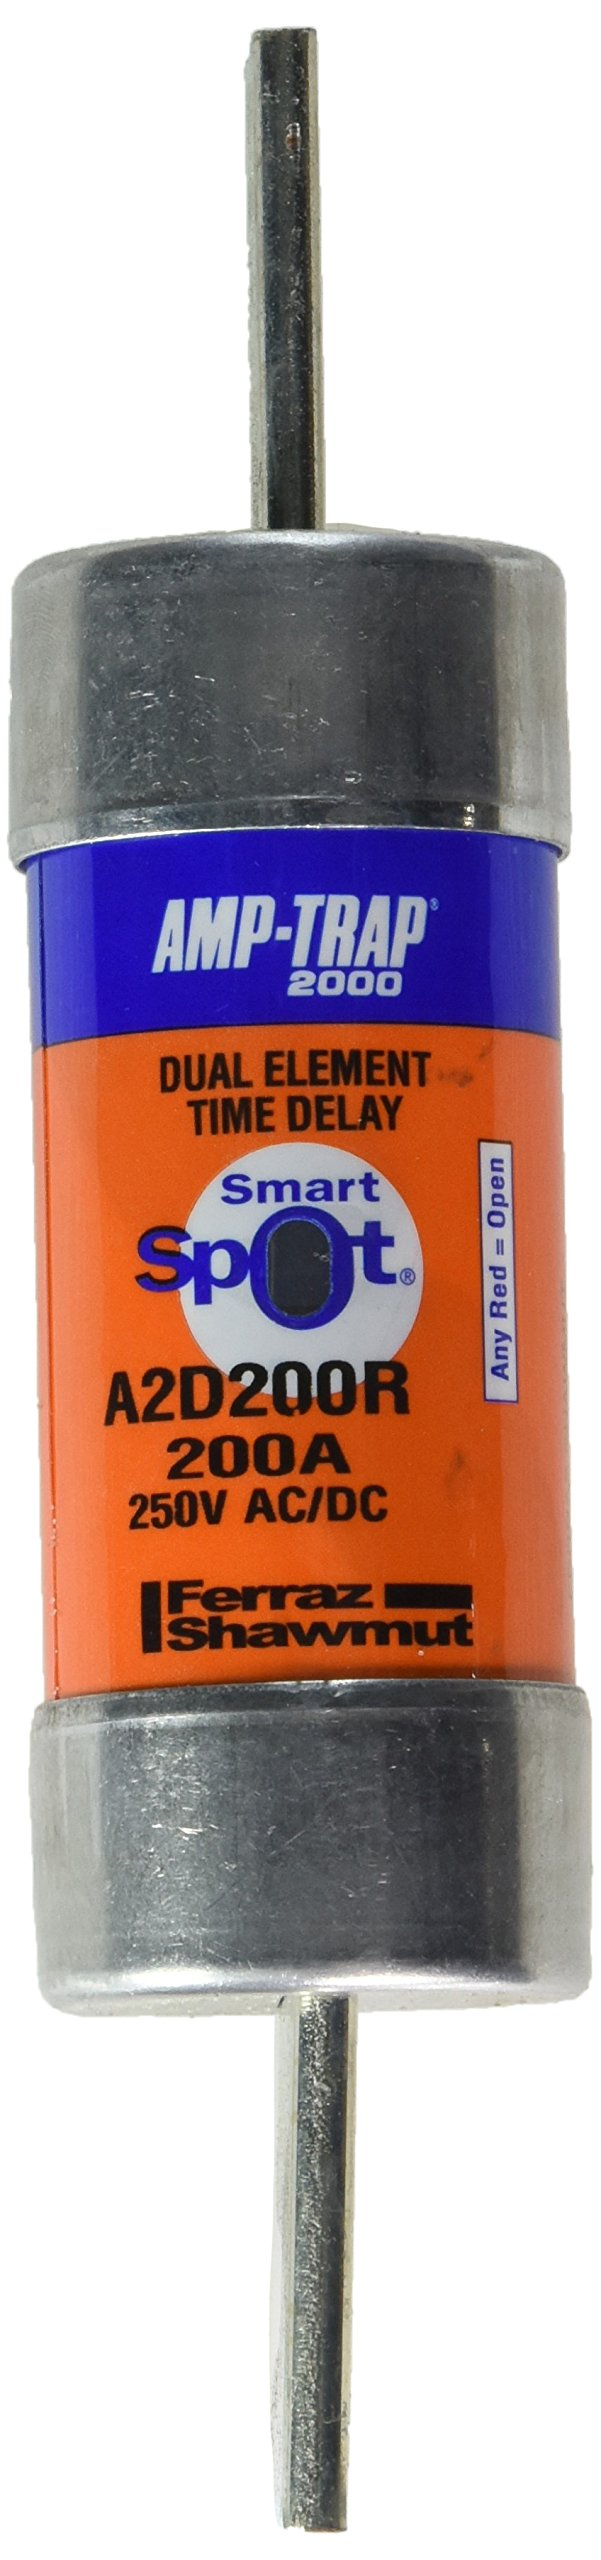 Mersen A2D200R 250V 200A Rk1 Time Delay Fuse